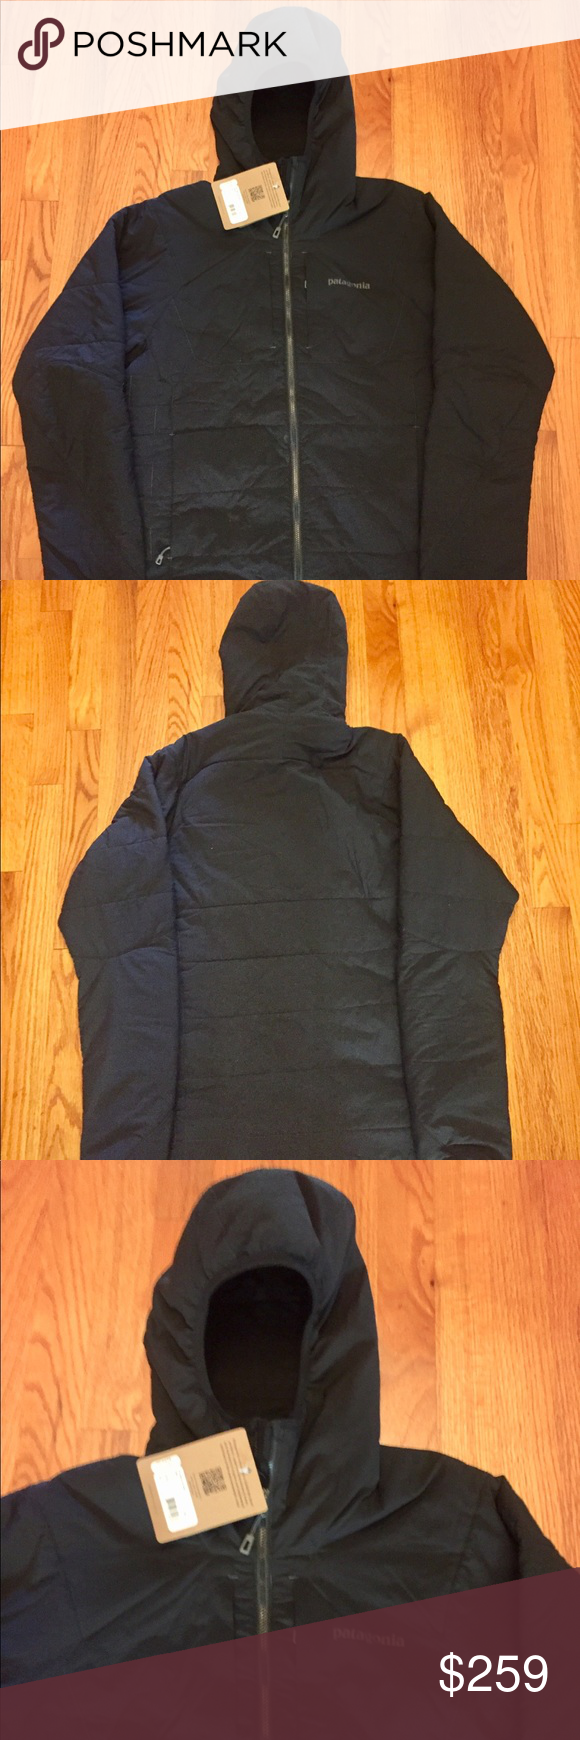 Patagonia NanoAir Hooded Jacket NWT's This jacket is